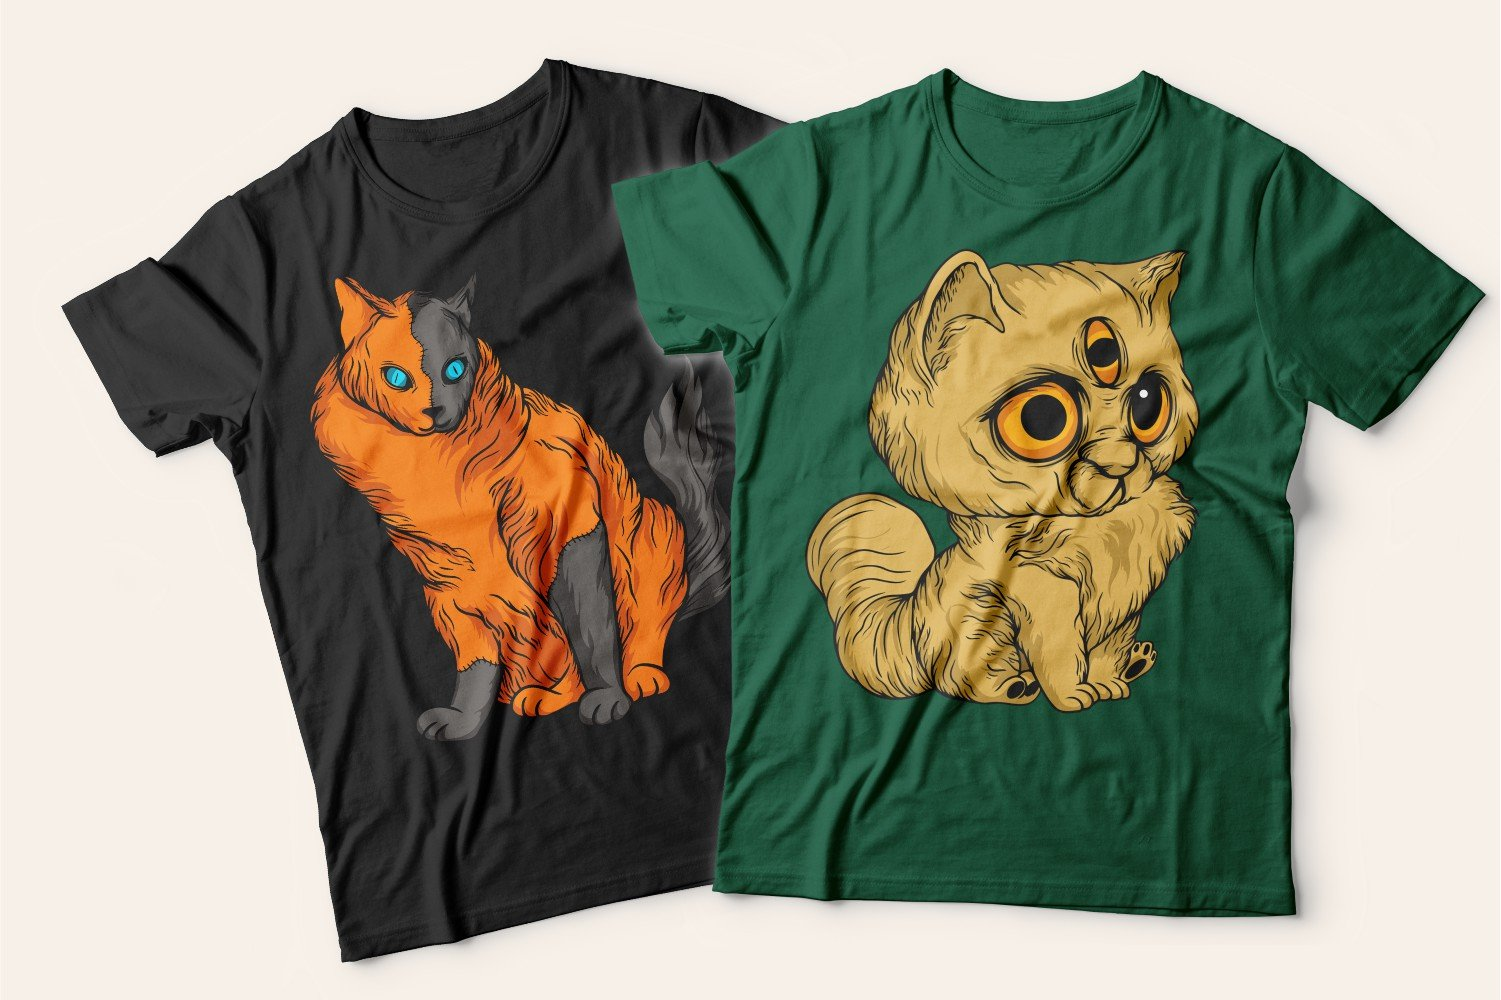 Two T-shirts with cats: one is green with a fluffy tricolor cat, the other is black with a three-eyed kitten.